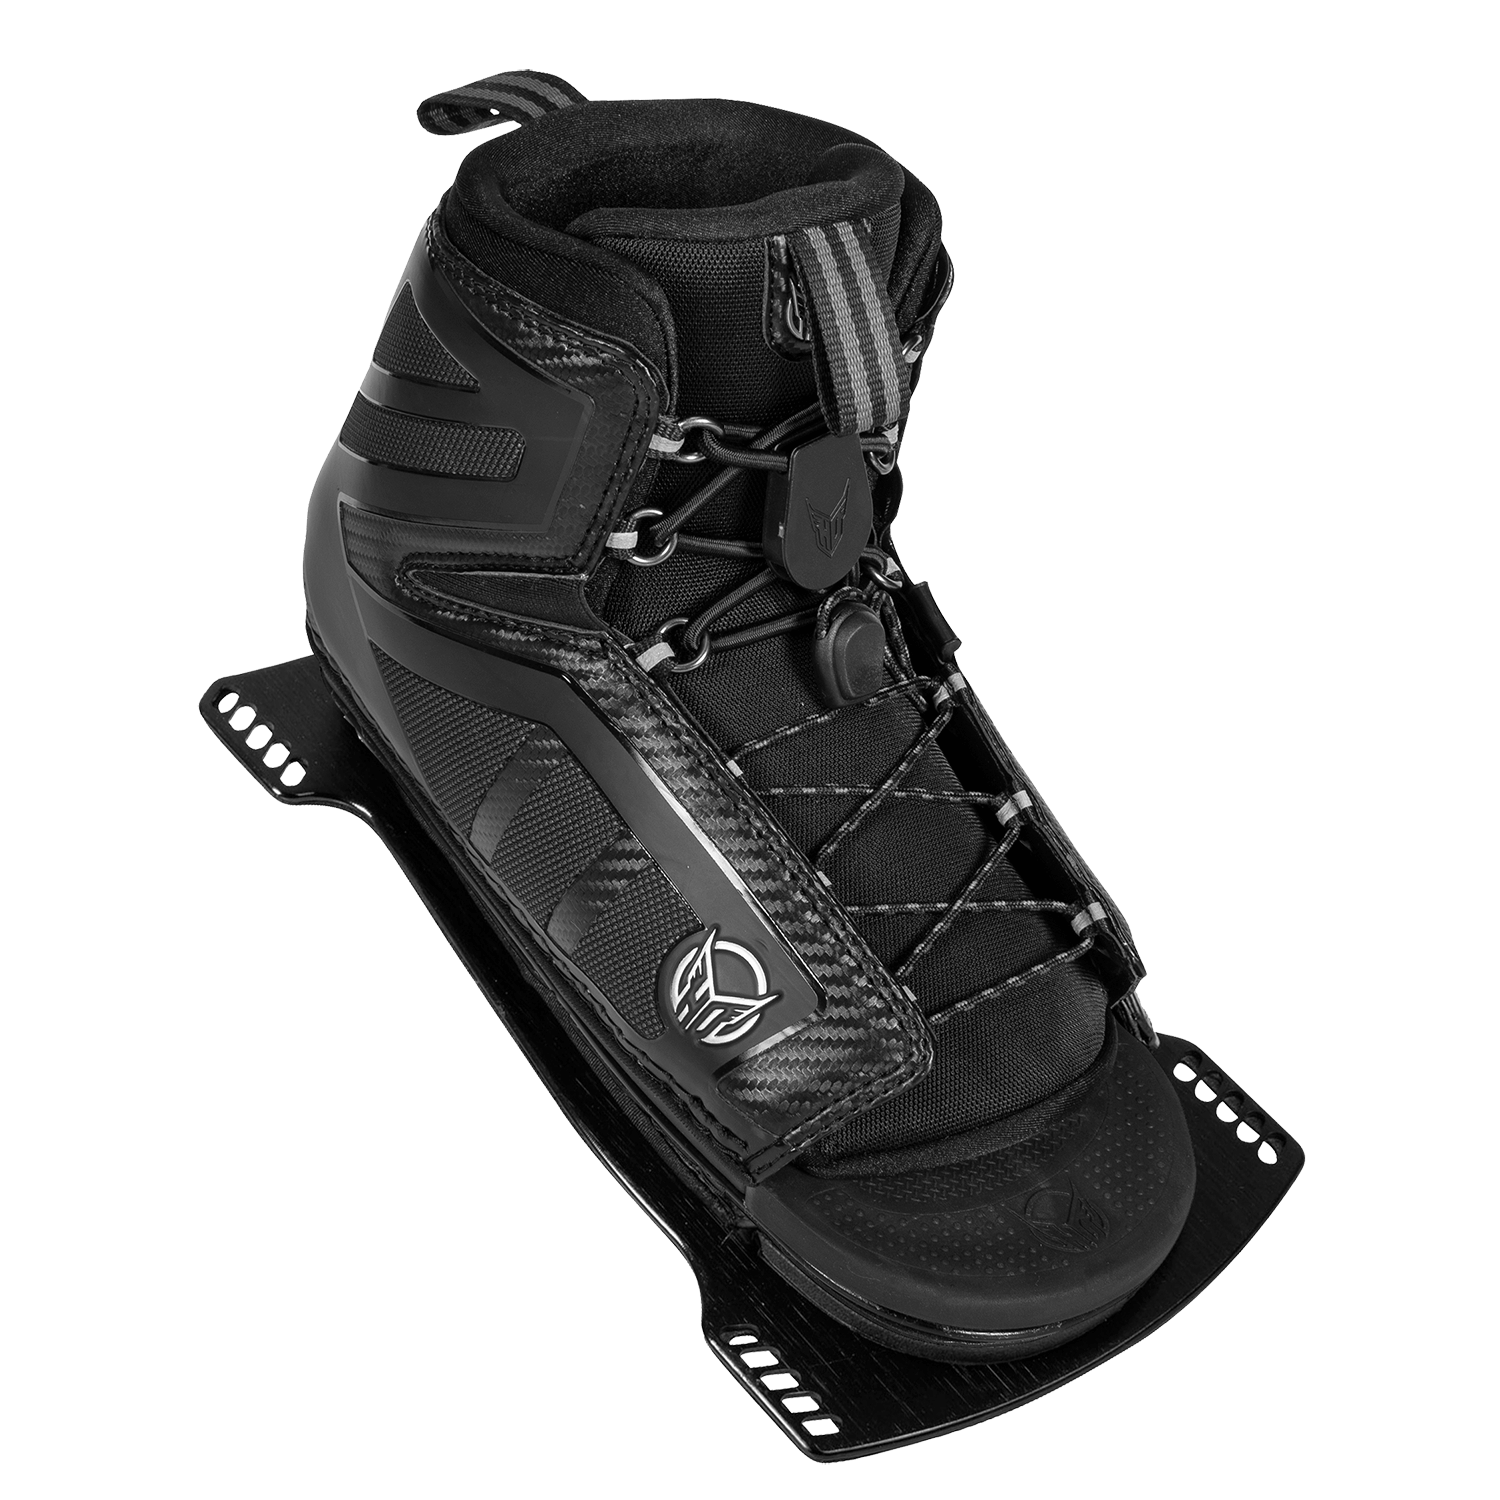 HO Sports Stance 130 Boot Plated - Front | 2021